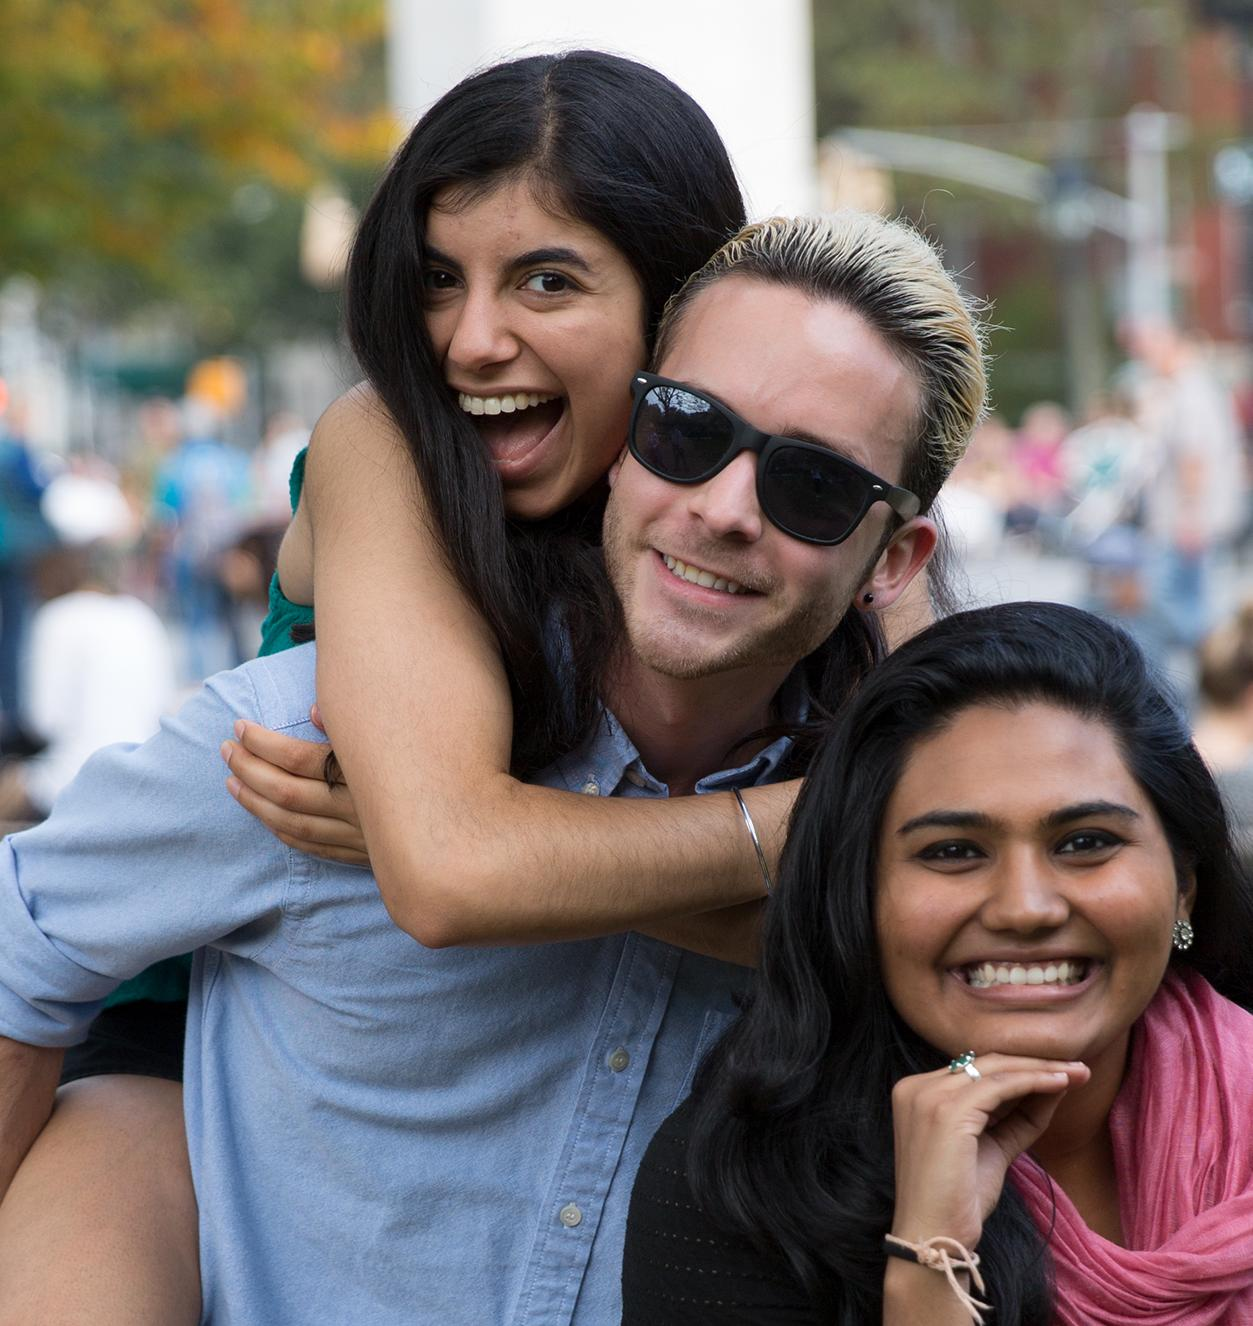 Matt Wilson with friends posing in Washington Square Park